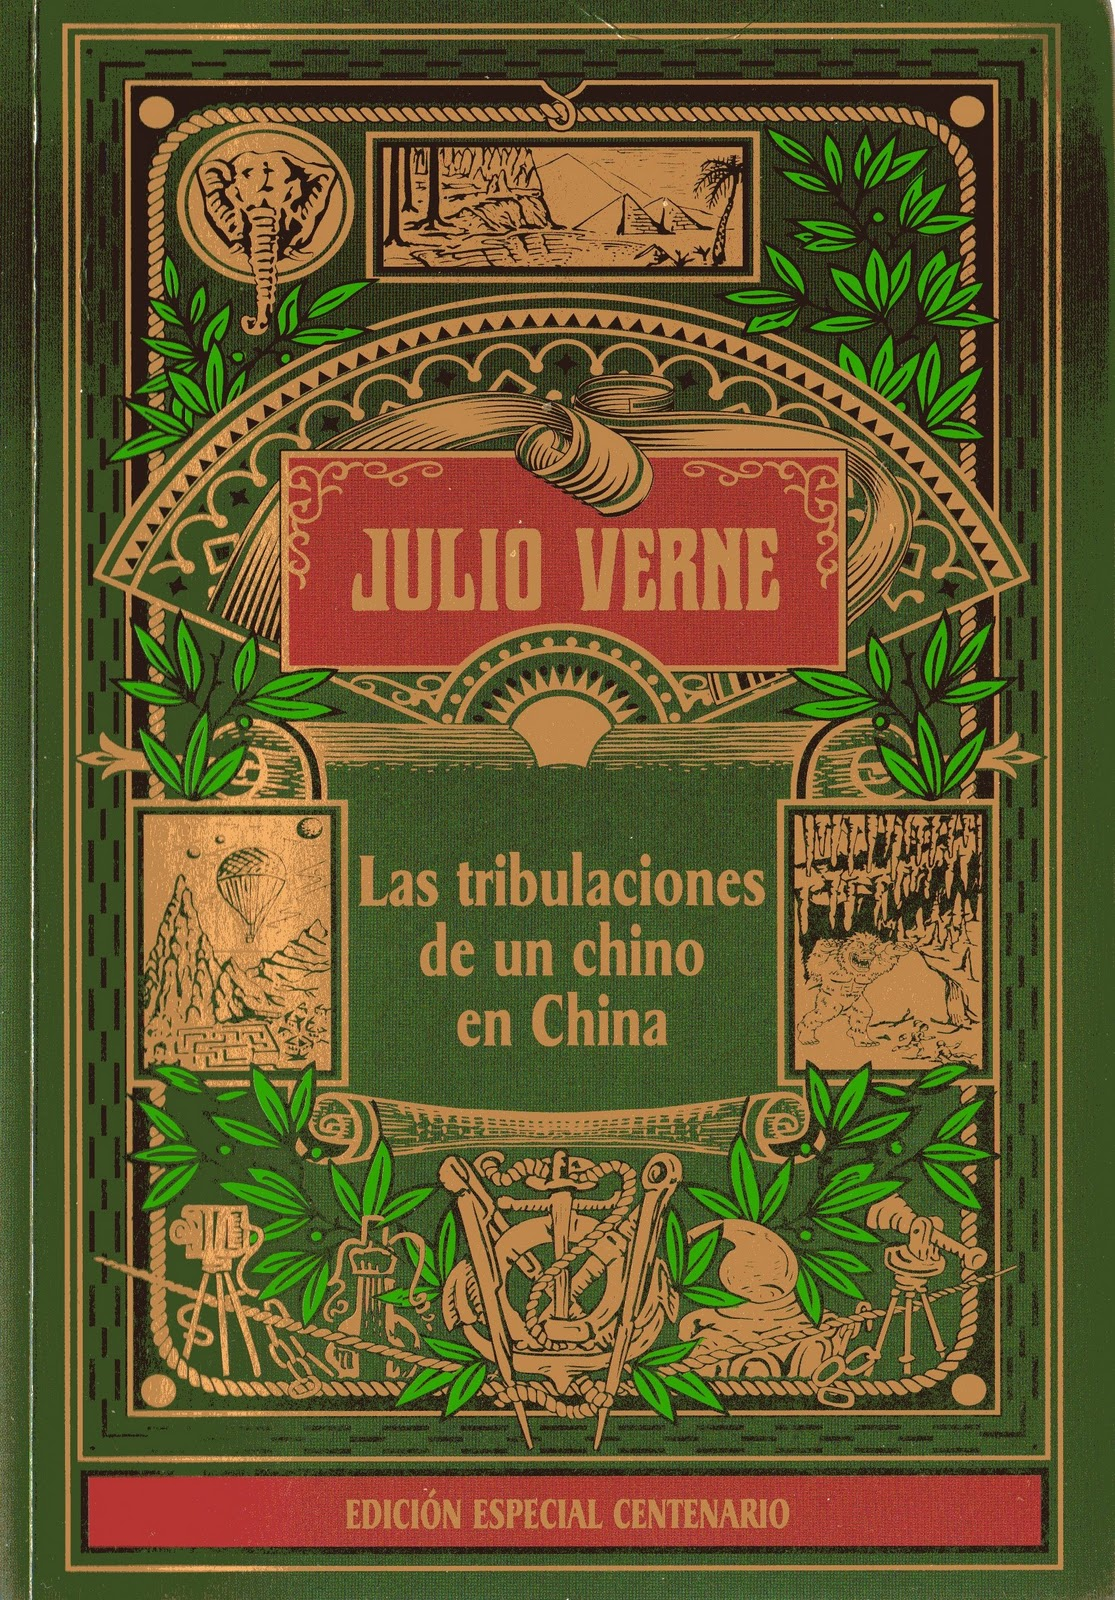 Libro Electronico Chino Jules Verne 2 10 11 9 10 11